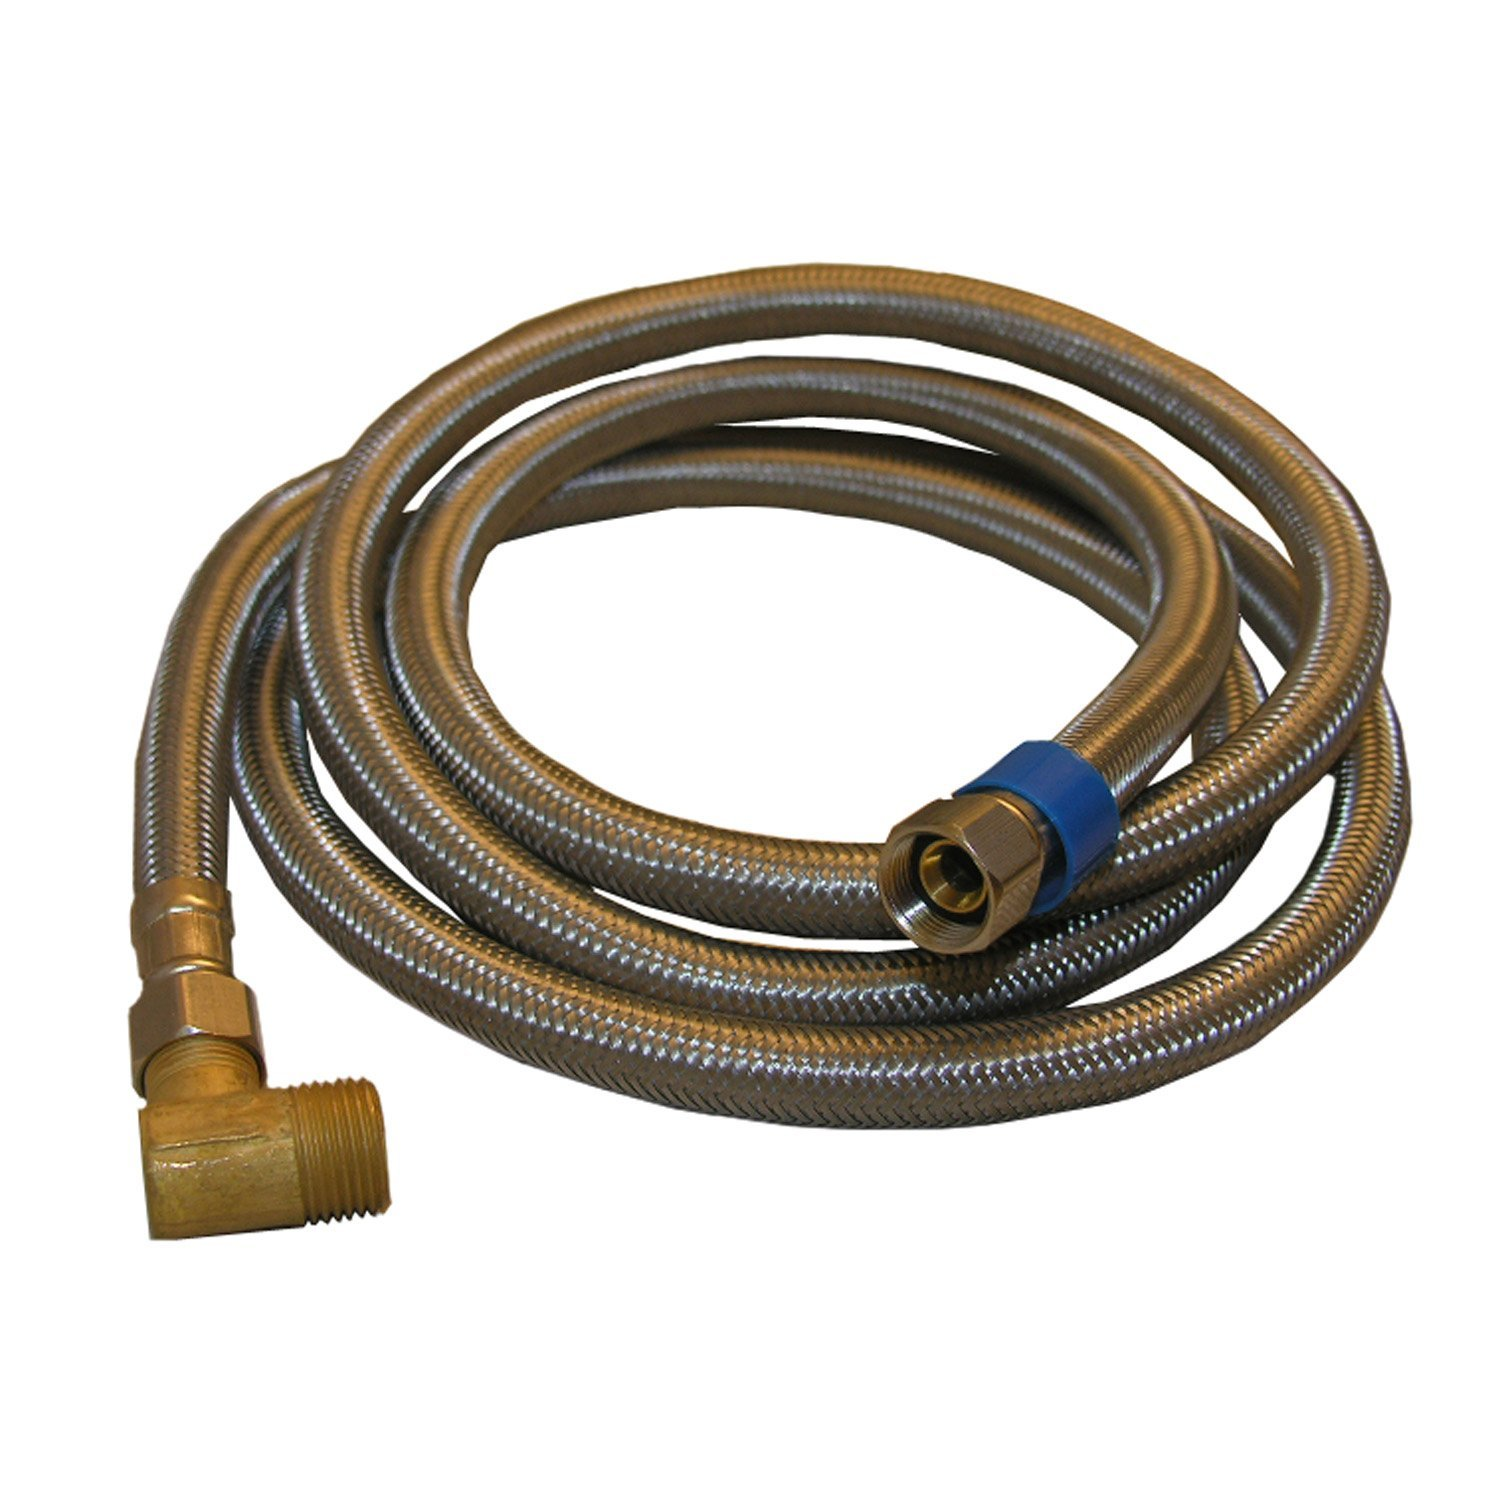 LASCO 10-0972 Braided Stainless Steel Dishwasher Supply Line with 3/8-Inch Compression